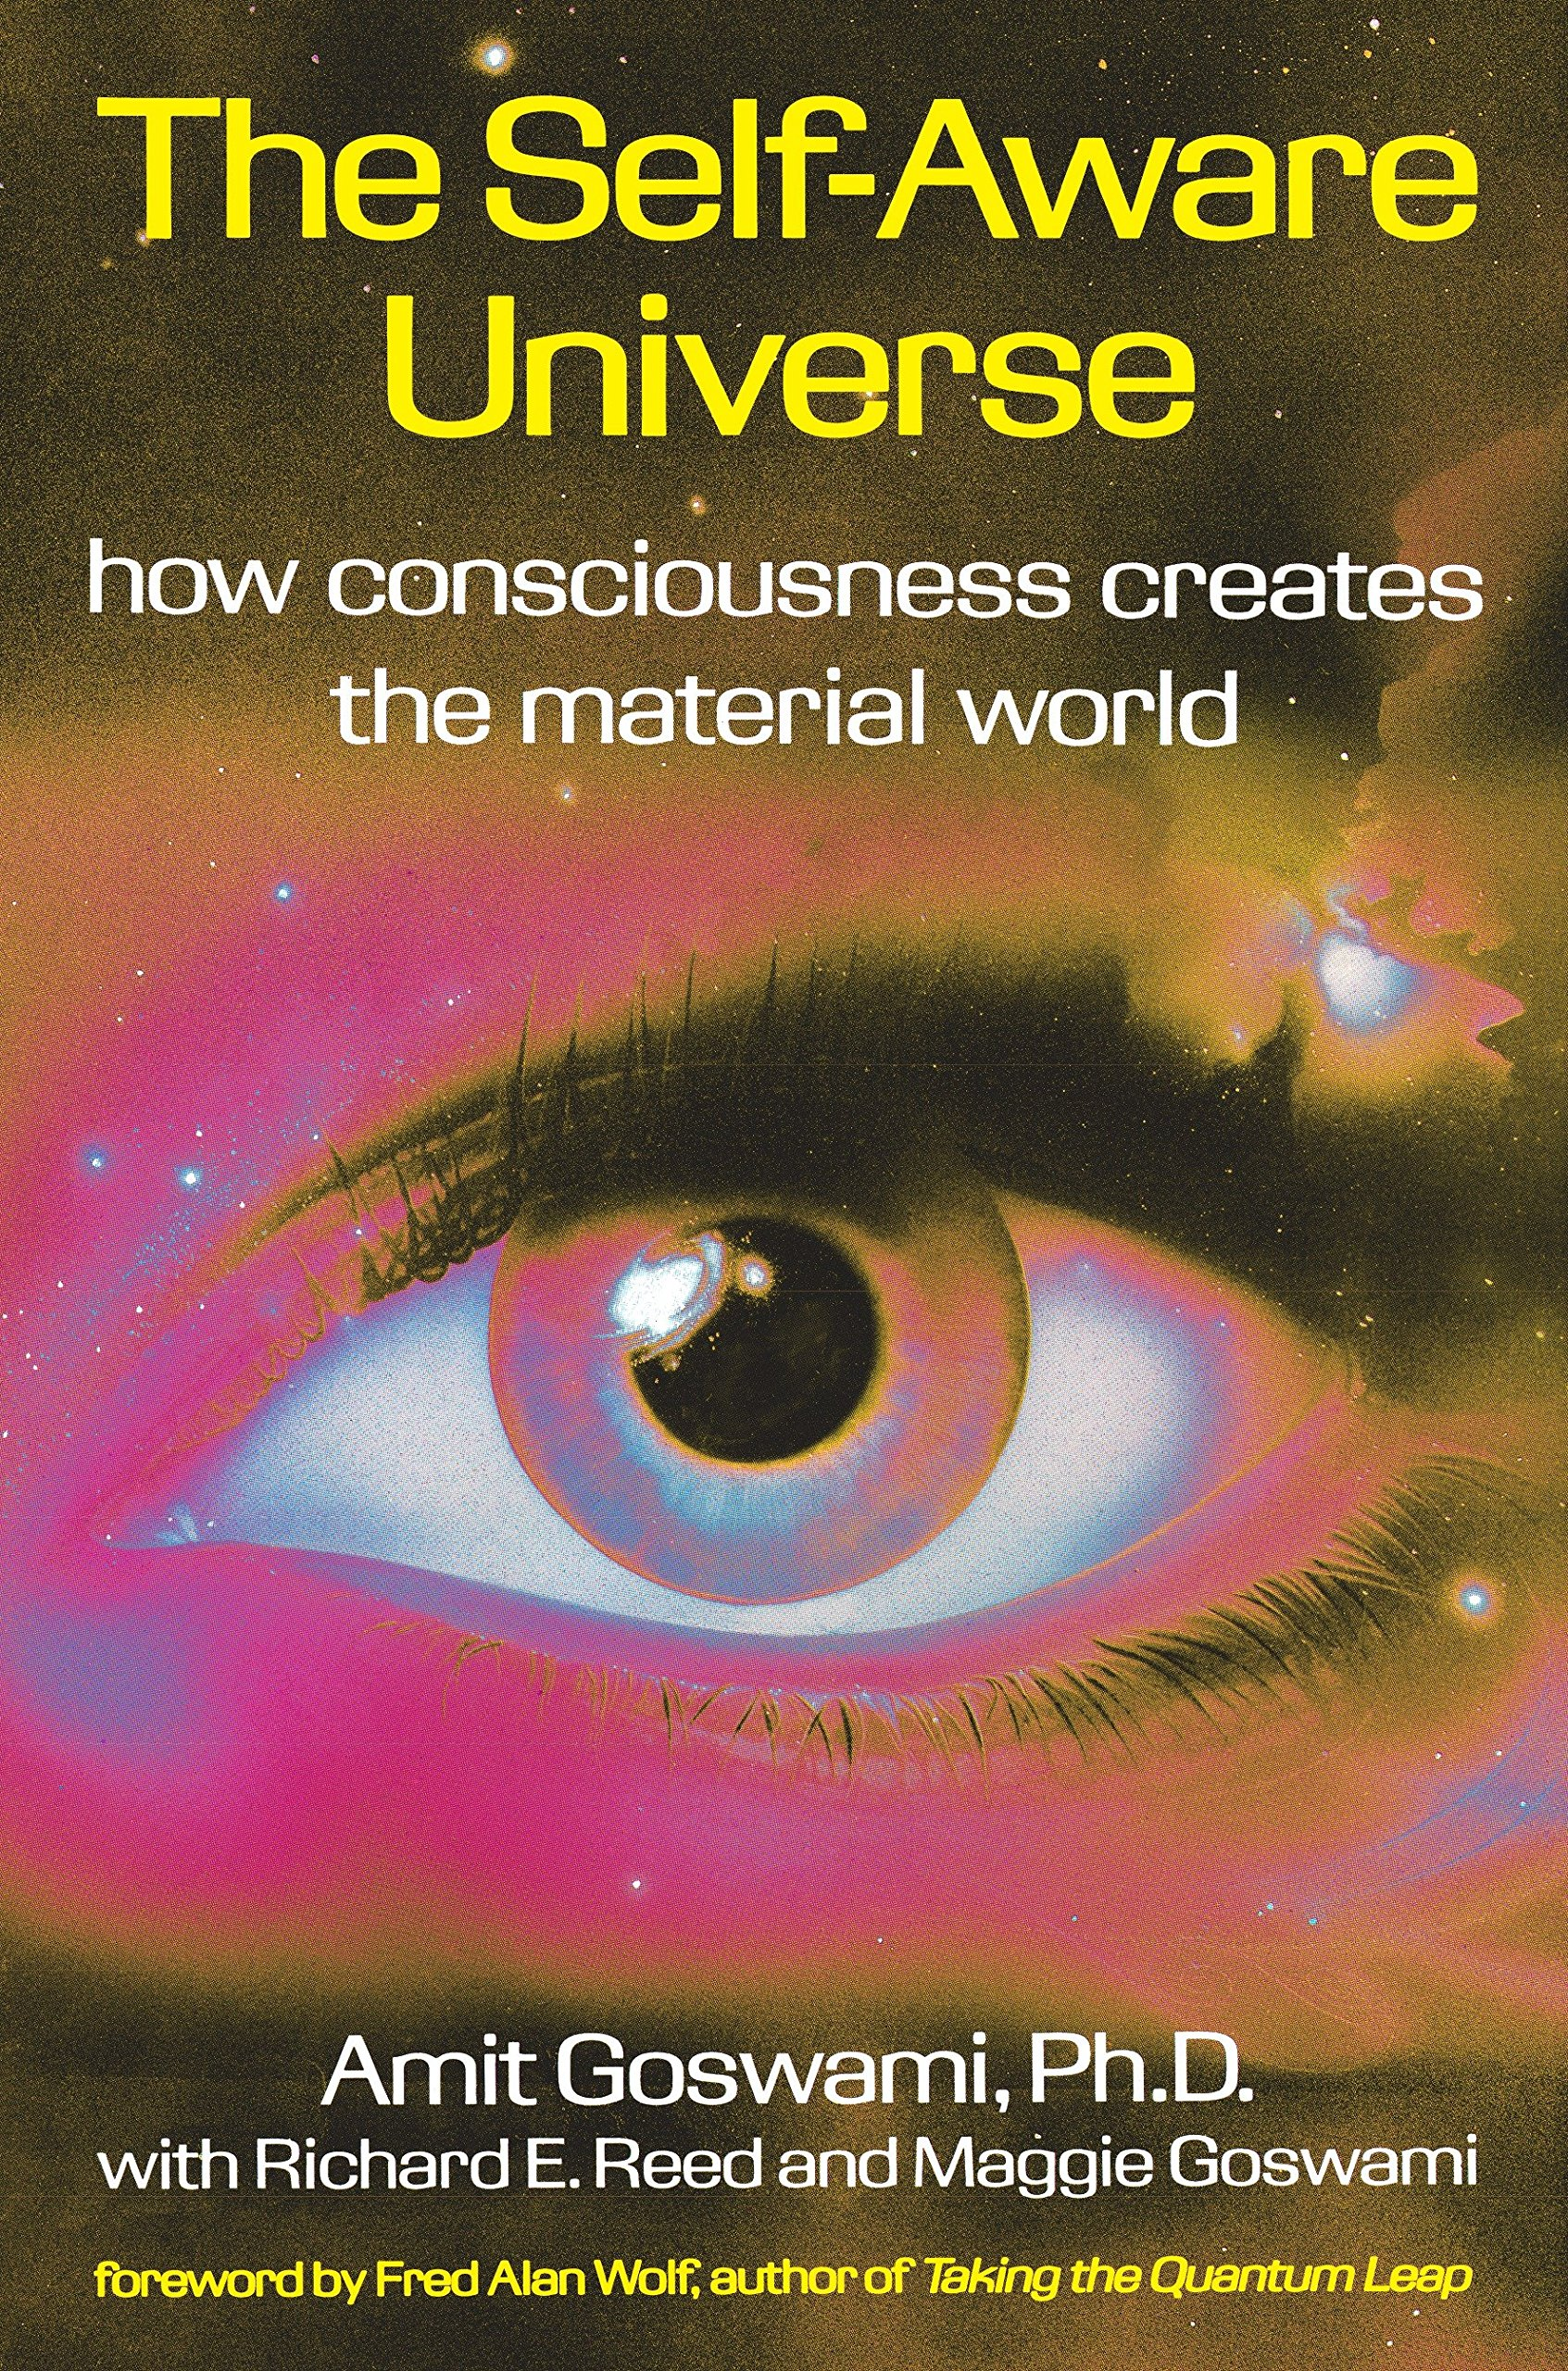 The Self-Aware Universe: How Consciousness Creates the Material World: Amit  Goswami: 9780874777987: Amazon.com: Books